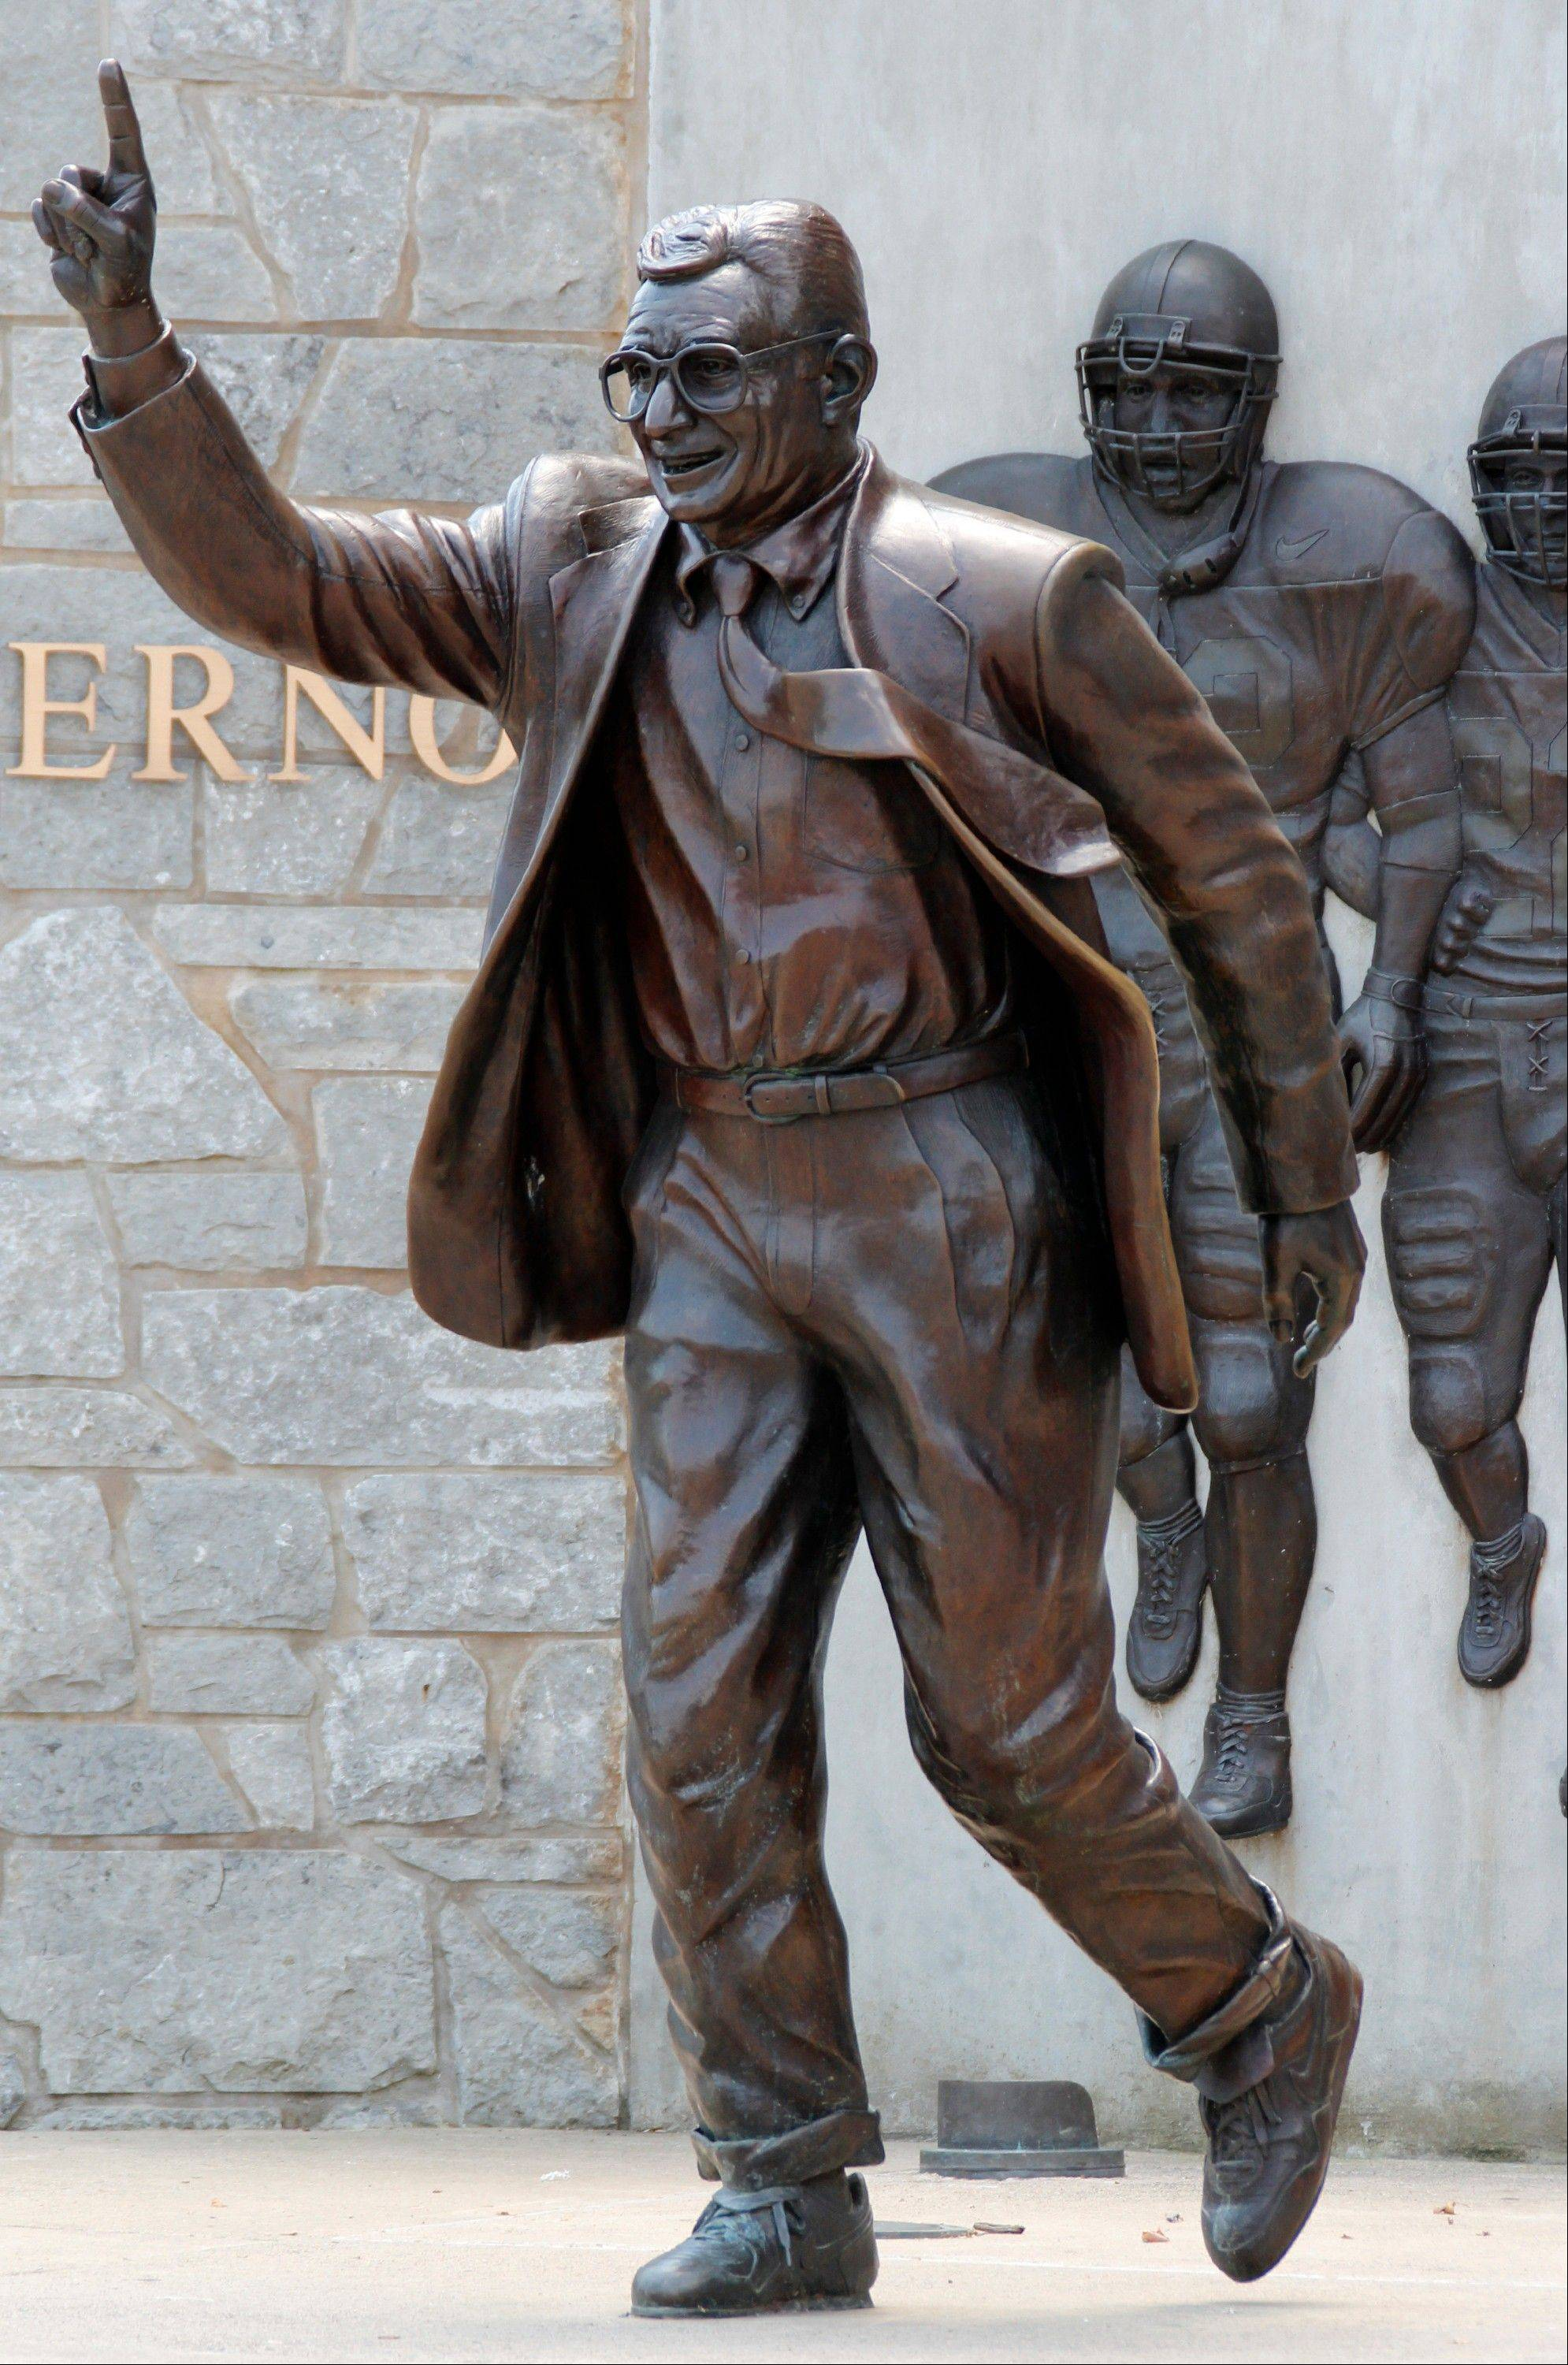 Penn State will remove the statue of the late football coach Joe Paterno outside Beaver Stadium following a report that showed he helped cover up child sex-abuse allegations against former assistant Jerry Sandusky.